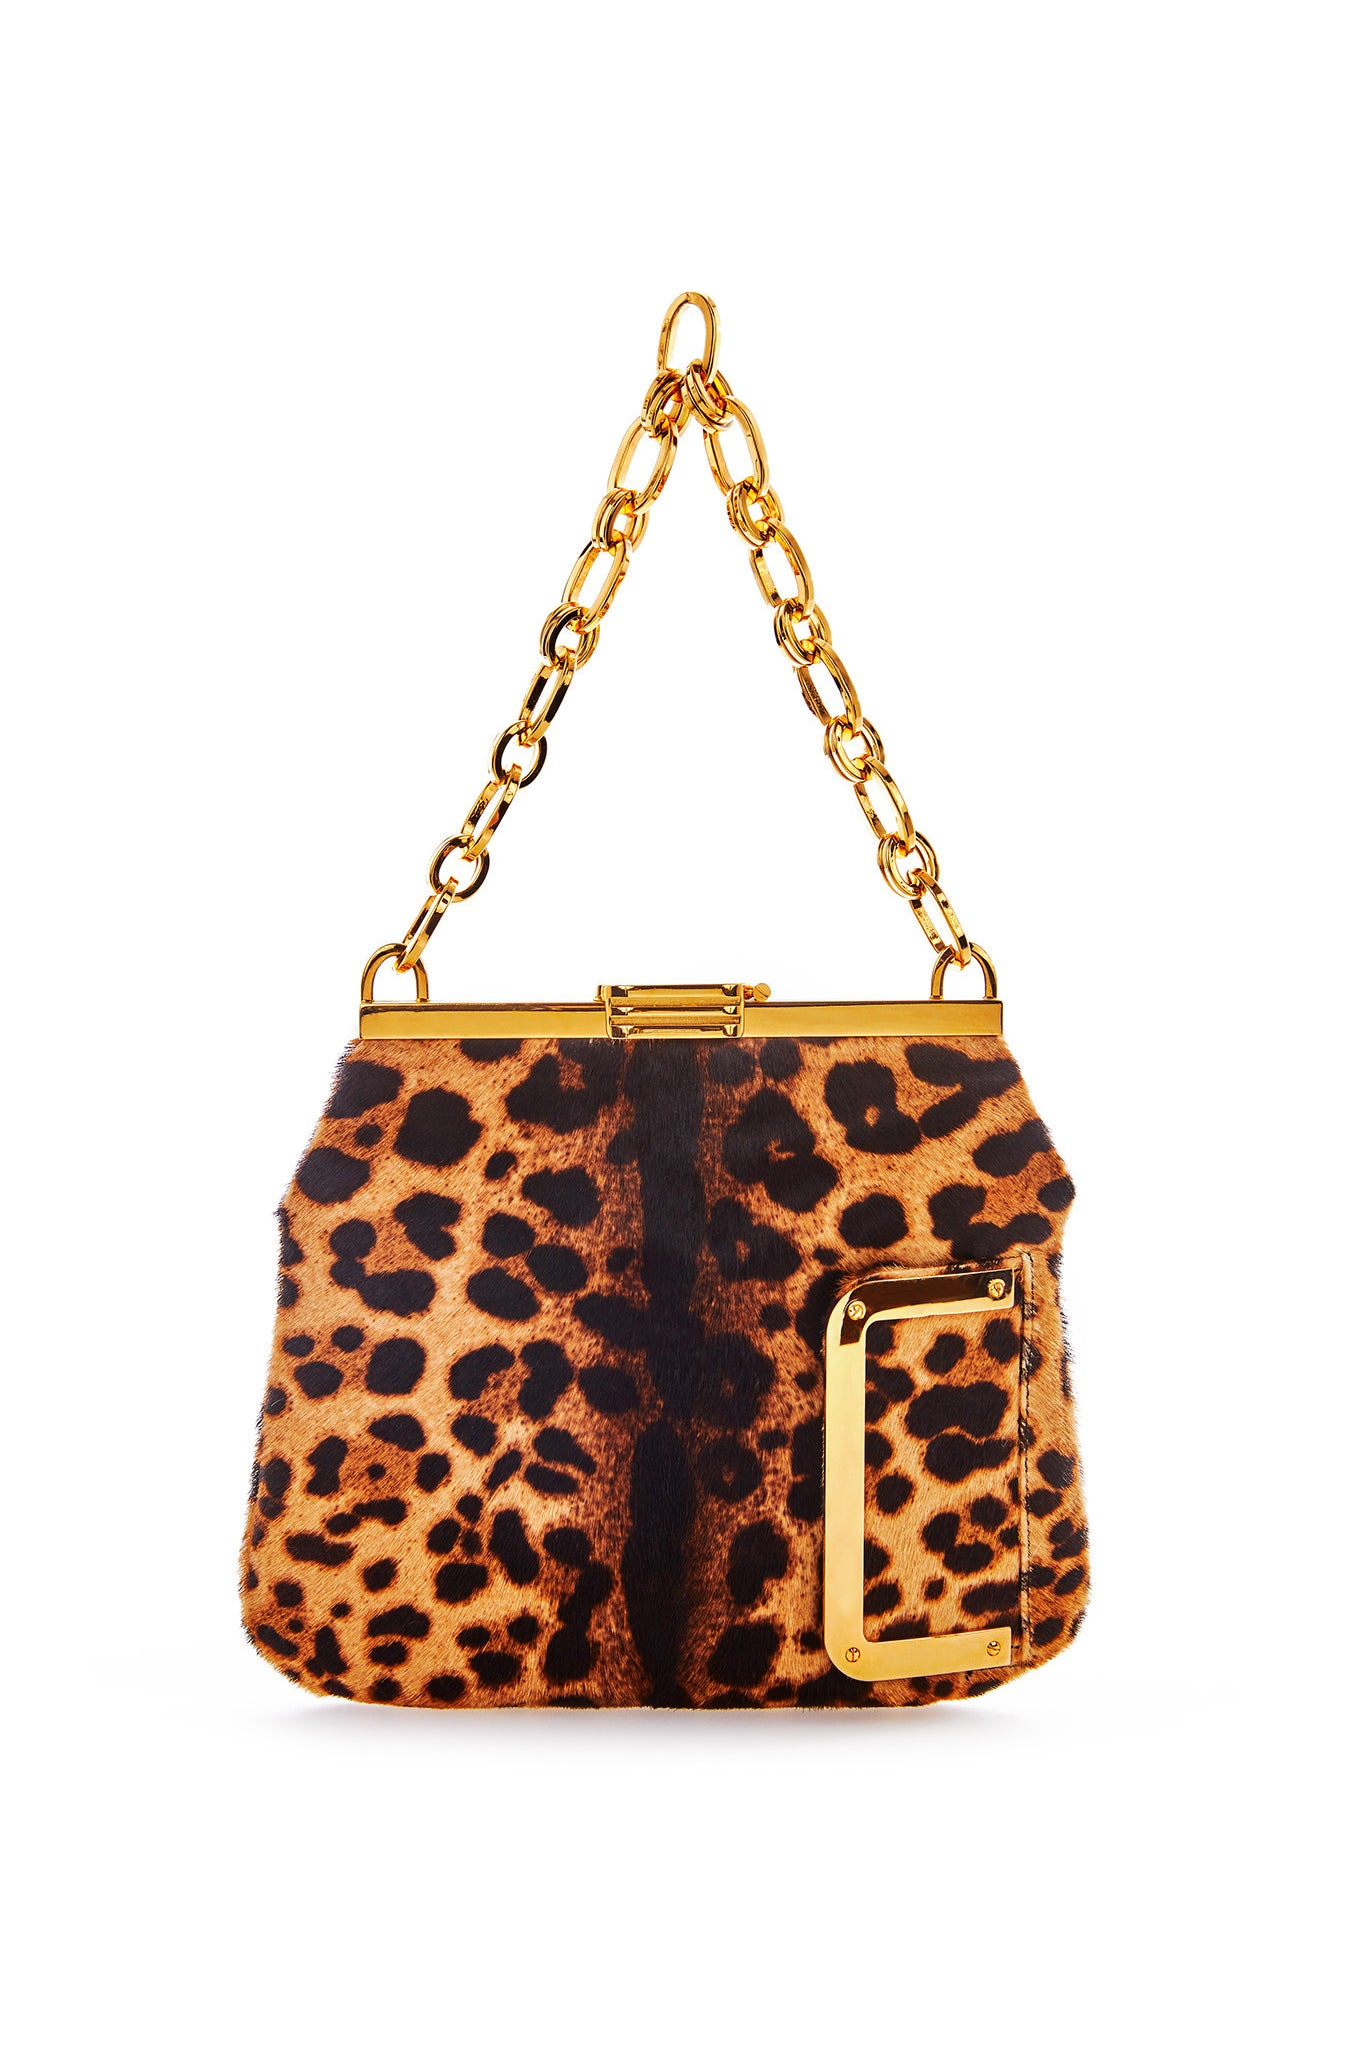 5 AM Bag in Leopard Printed Calf Hair